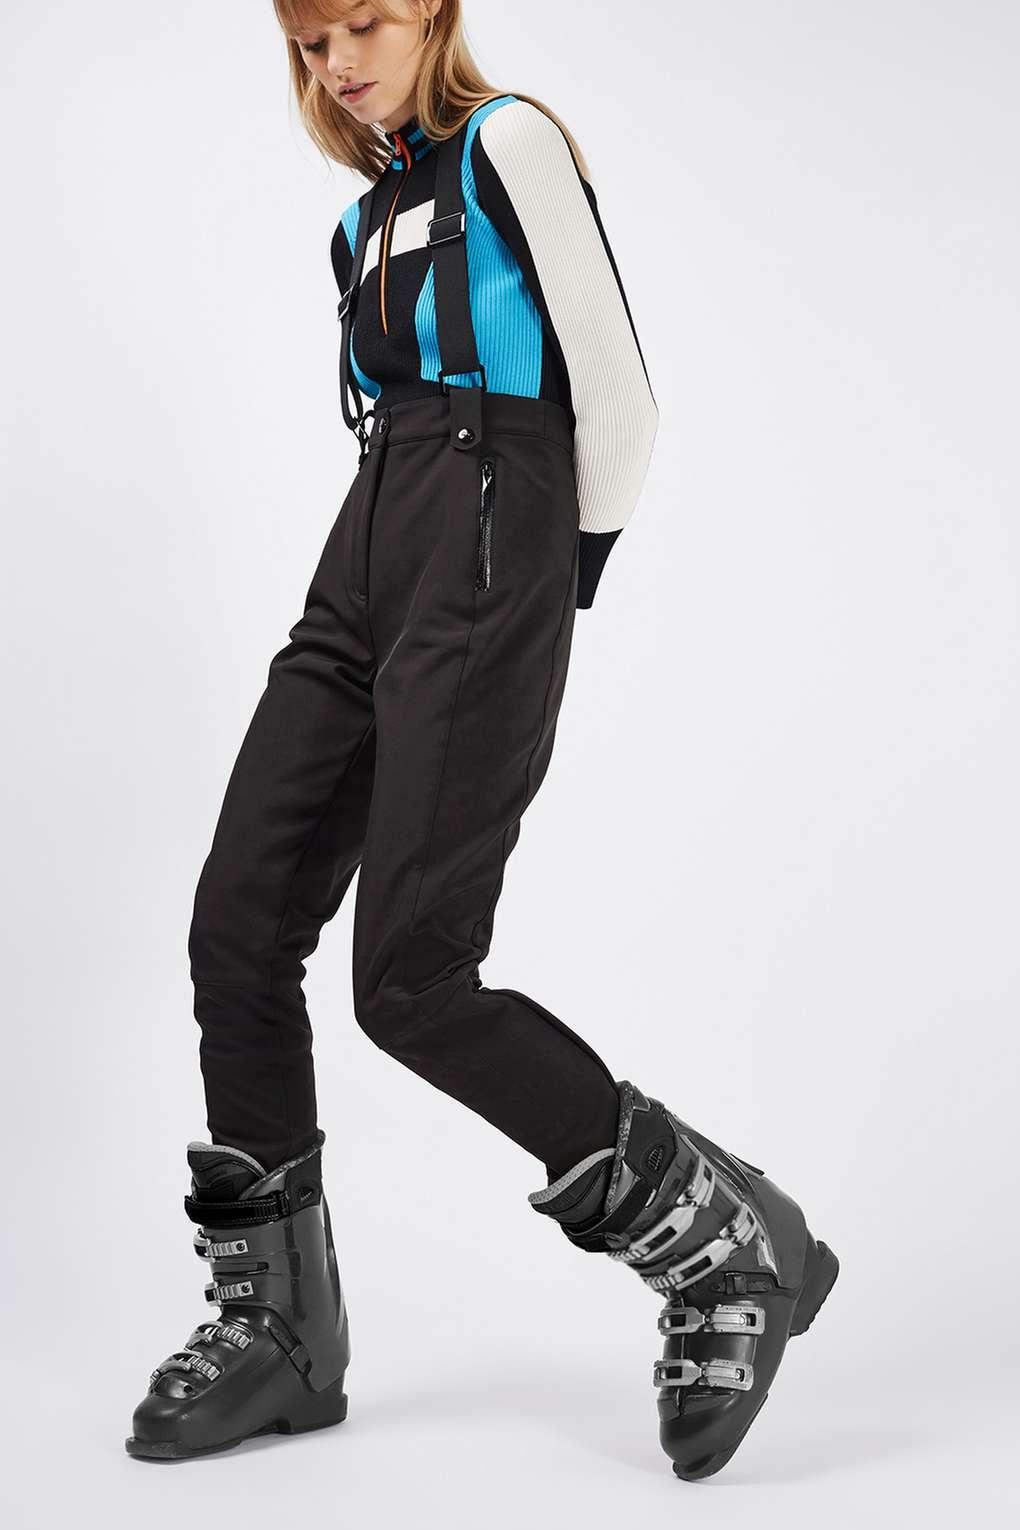 Jacket Ski Pants Lyst - Topshop Skinny Fitted Salopettes By Sno In Black